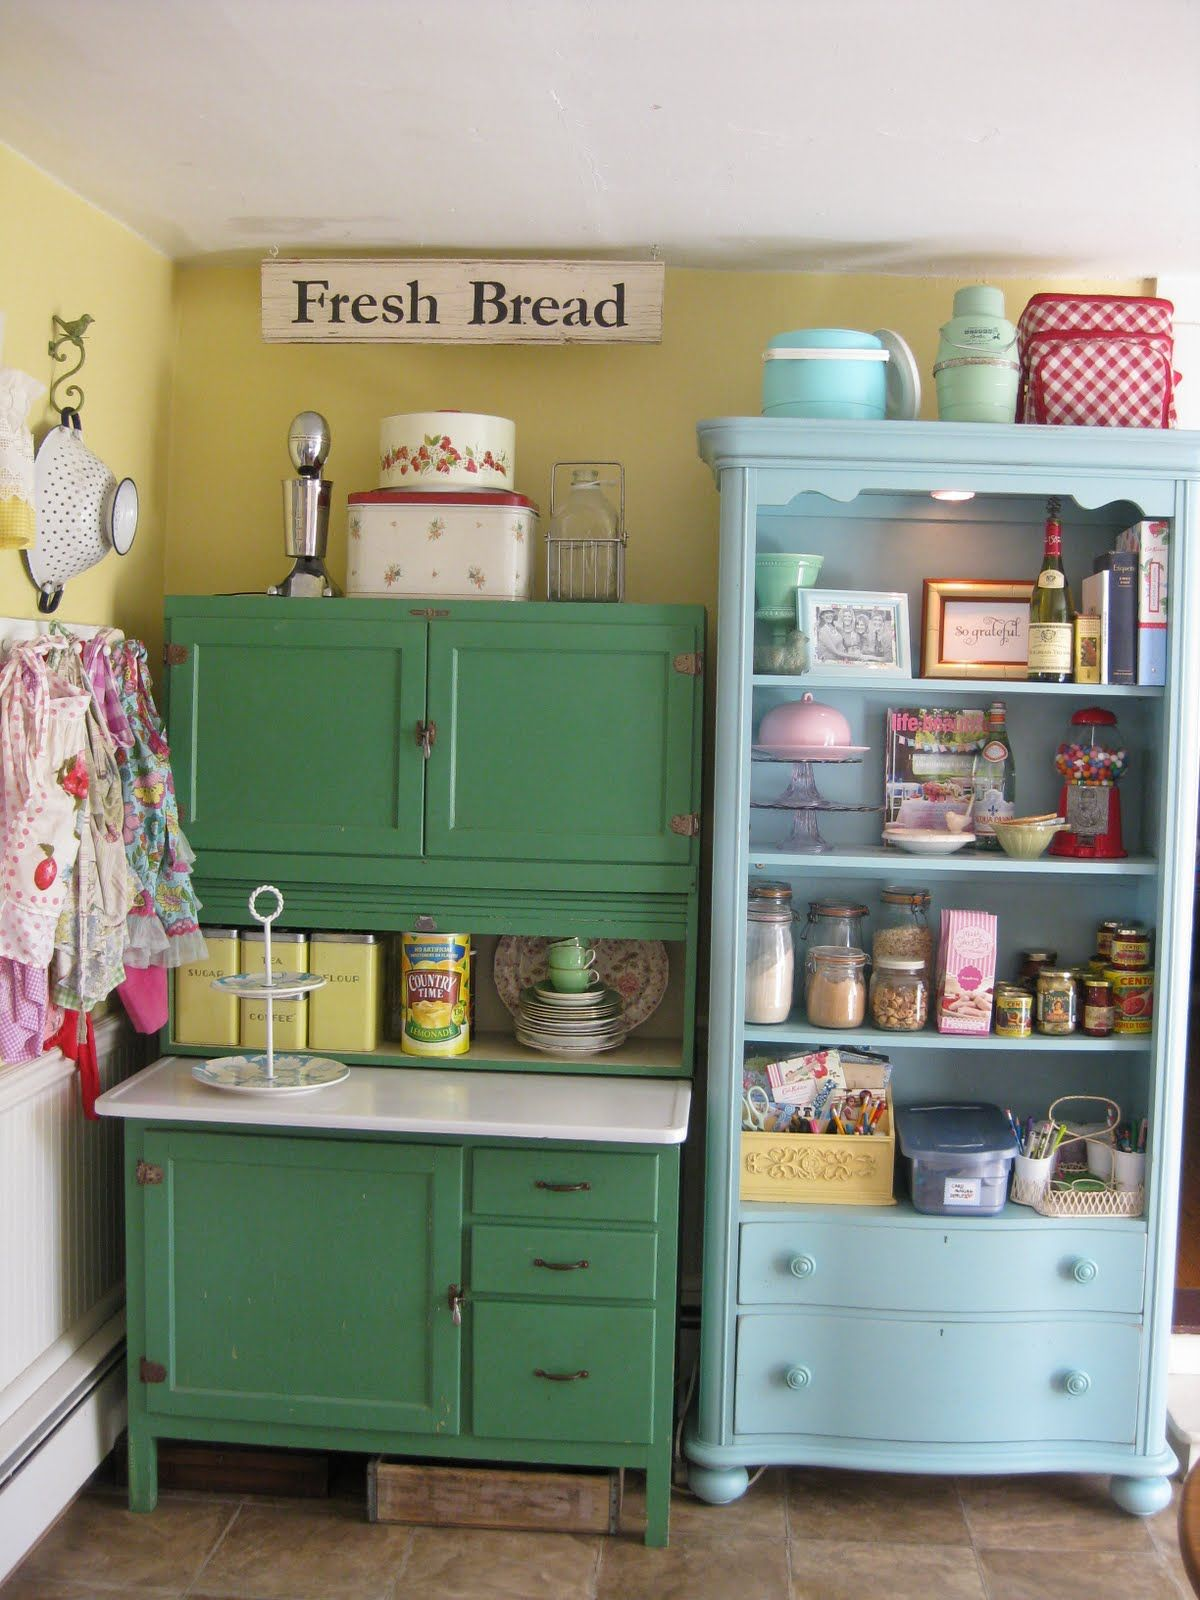 vintage kitchen cabinets Scenic Green And Blue Vintage Kitchen Cabinet Storage Also Open Racks As Inspiring Vintage Kitchen Furnishings